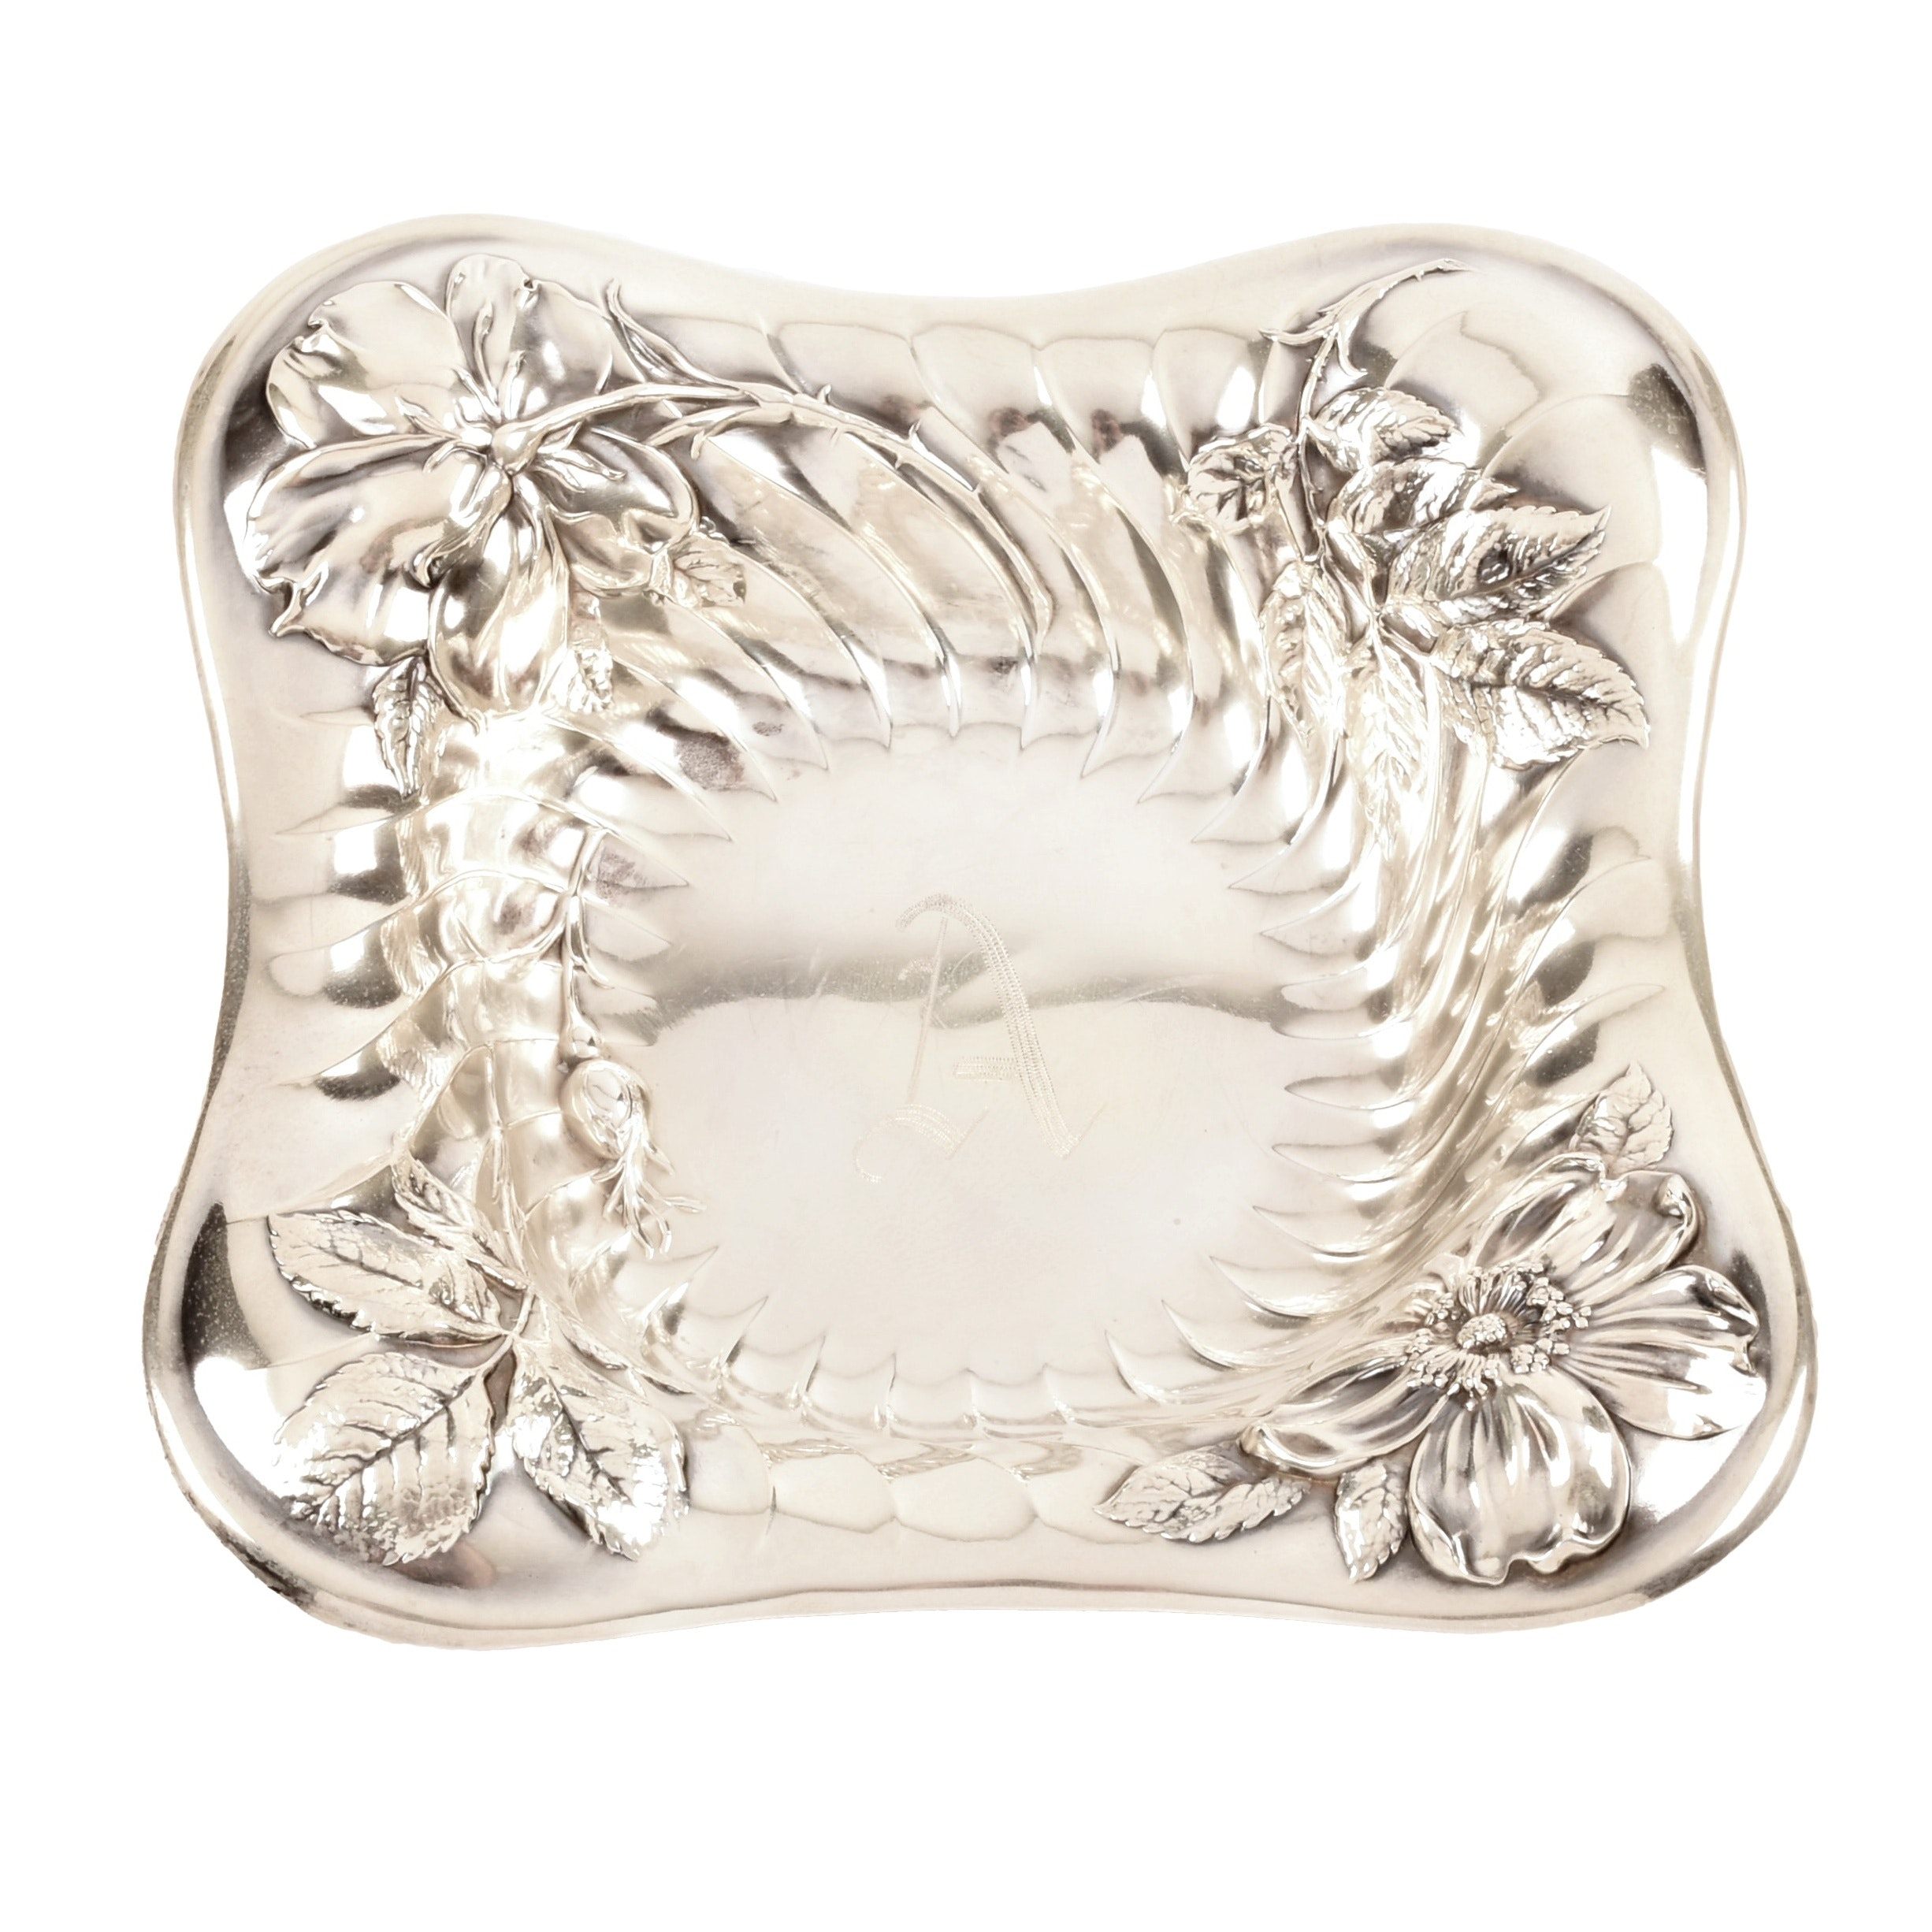 R. Wallace & Sons Sterling Silver Dogwood Dish